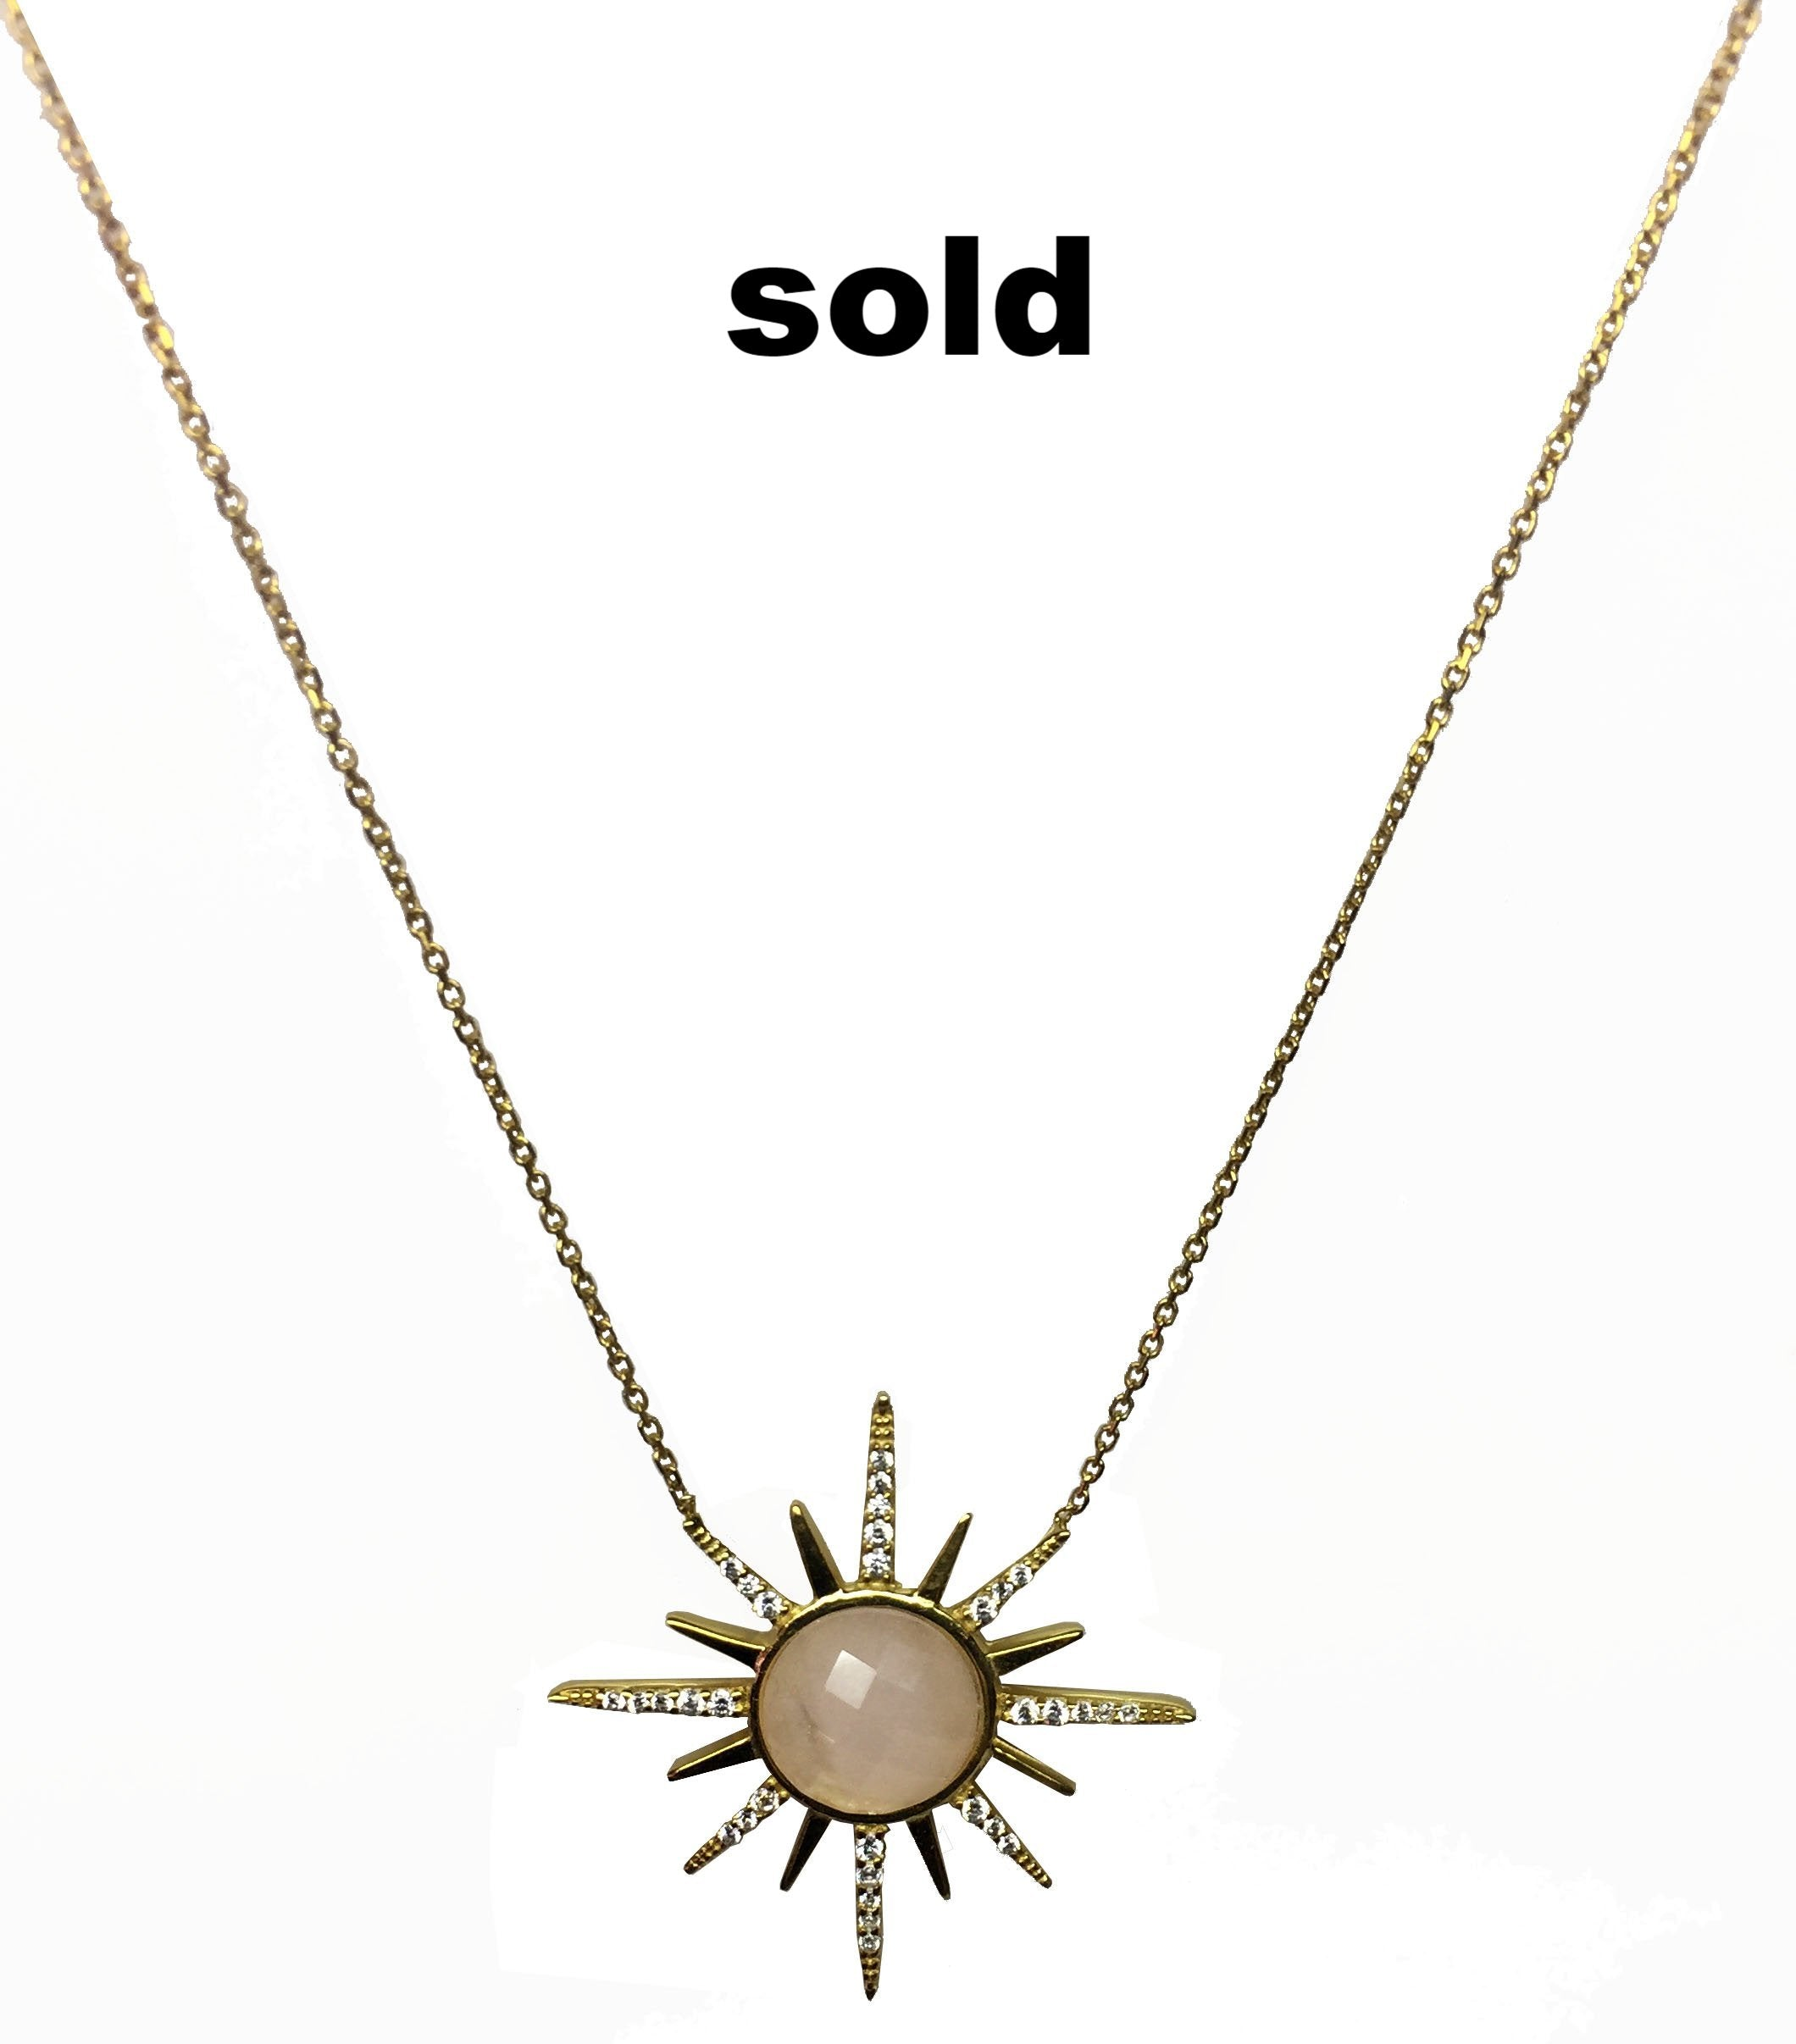 necklace by other ysl karry operandi moda o vintage sun large karryo gold